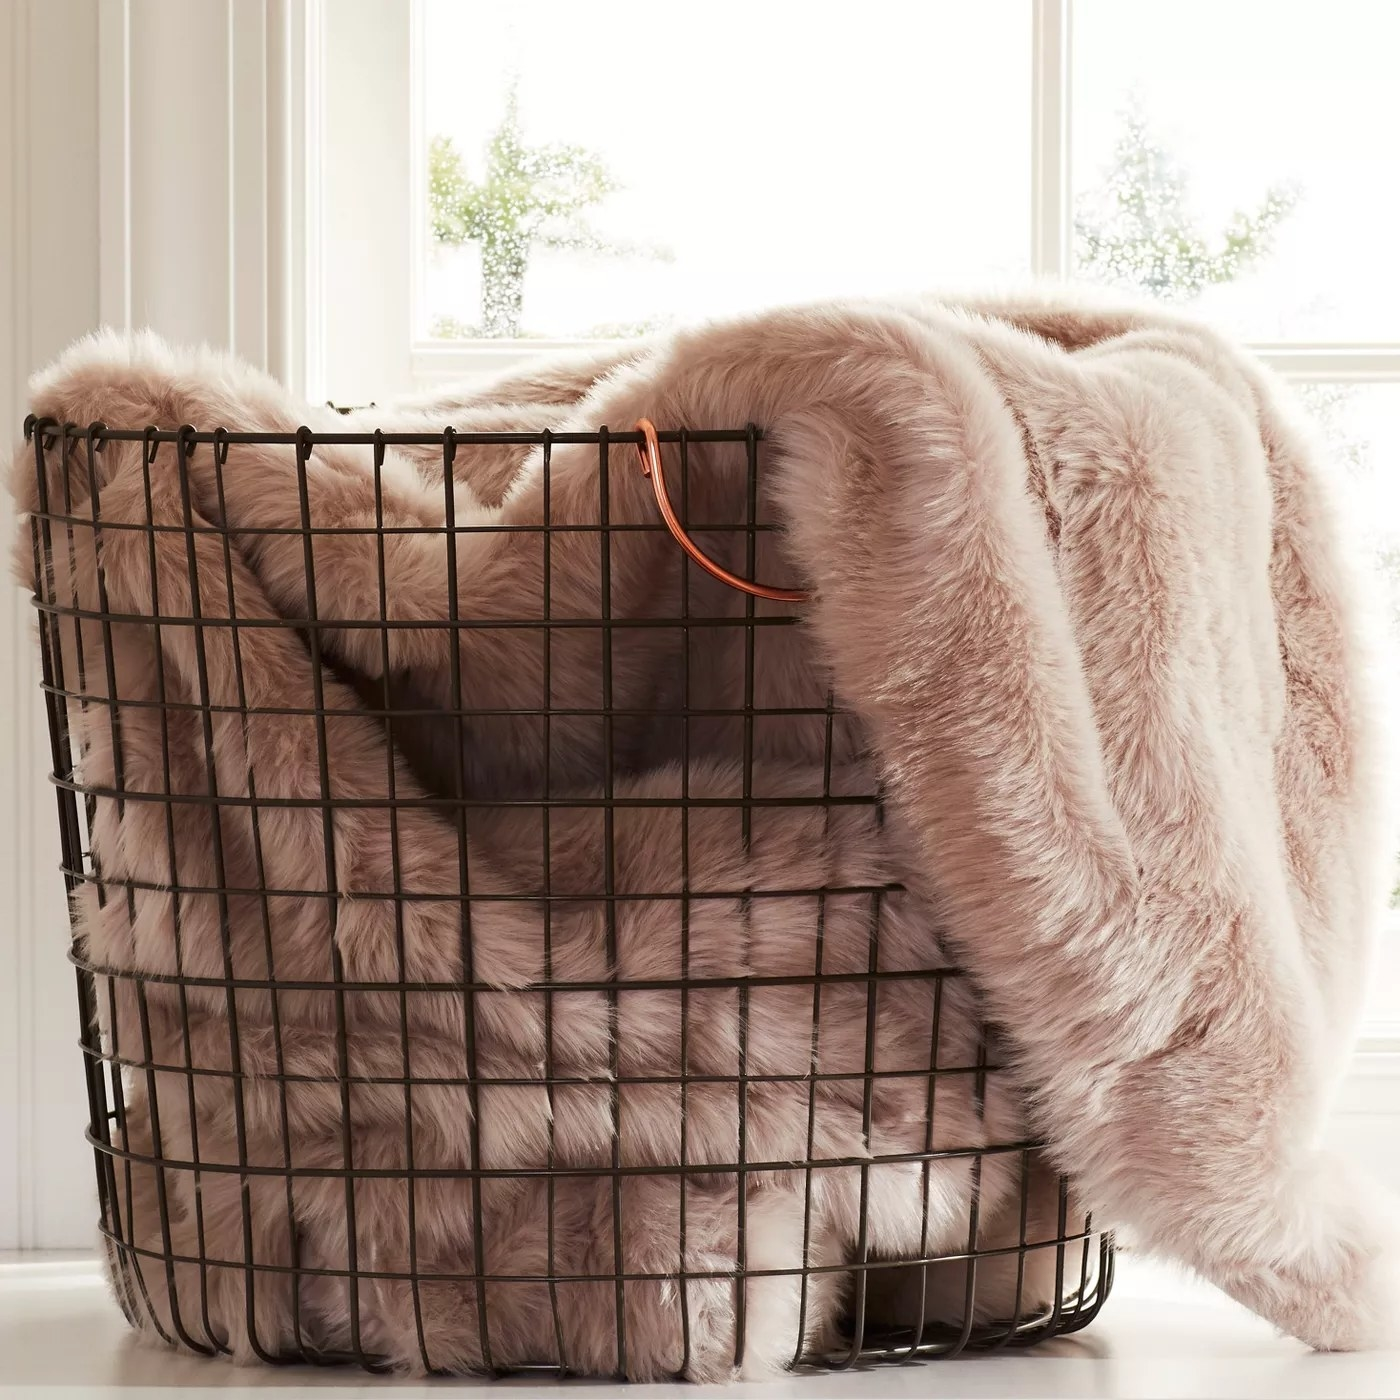 The black wire storage basket with copper handles holding some blankets